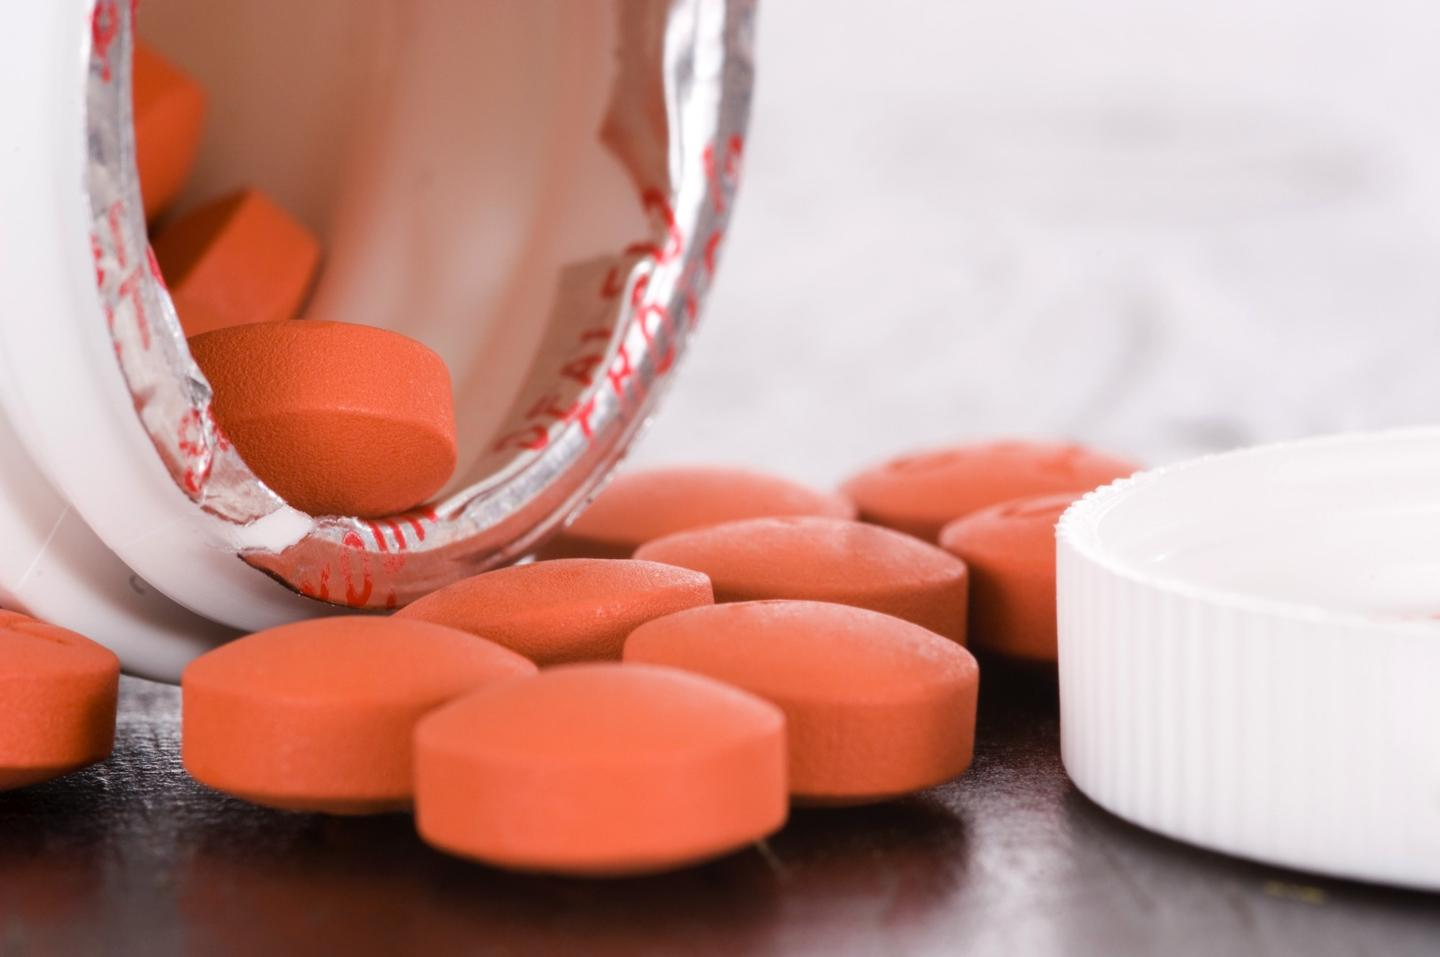 Ibuprofen could soon be supercharged thanks to researchers at Northwestern University